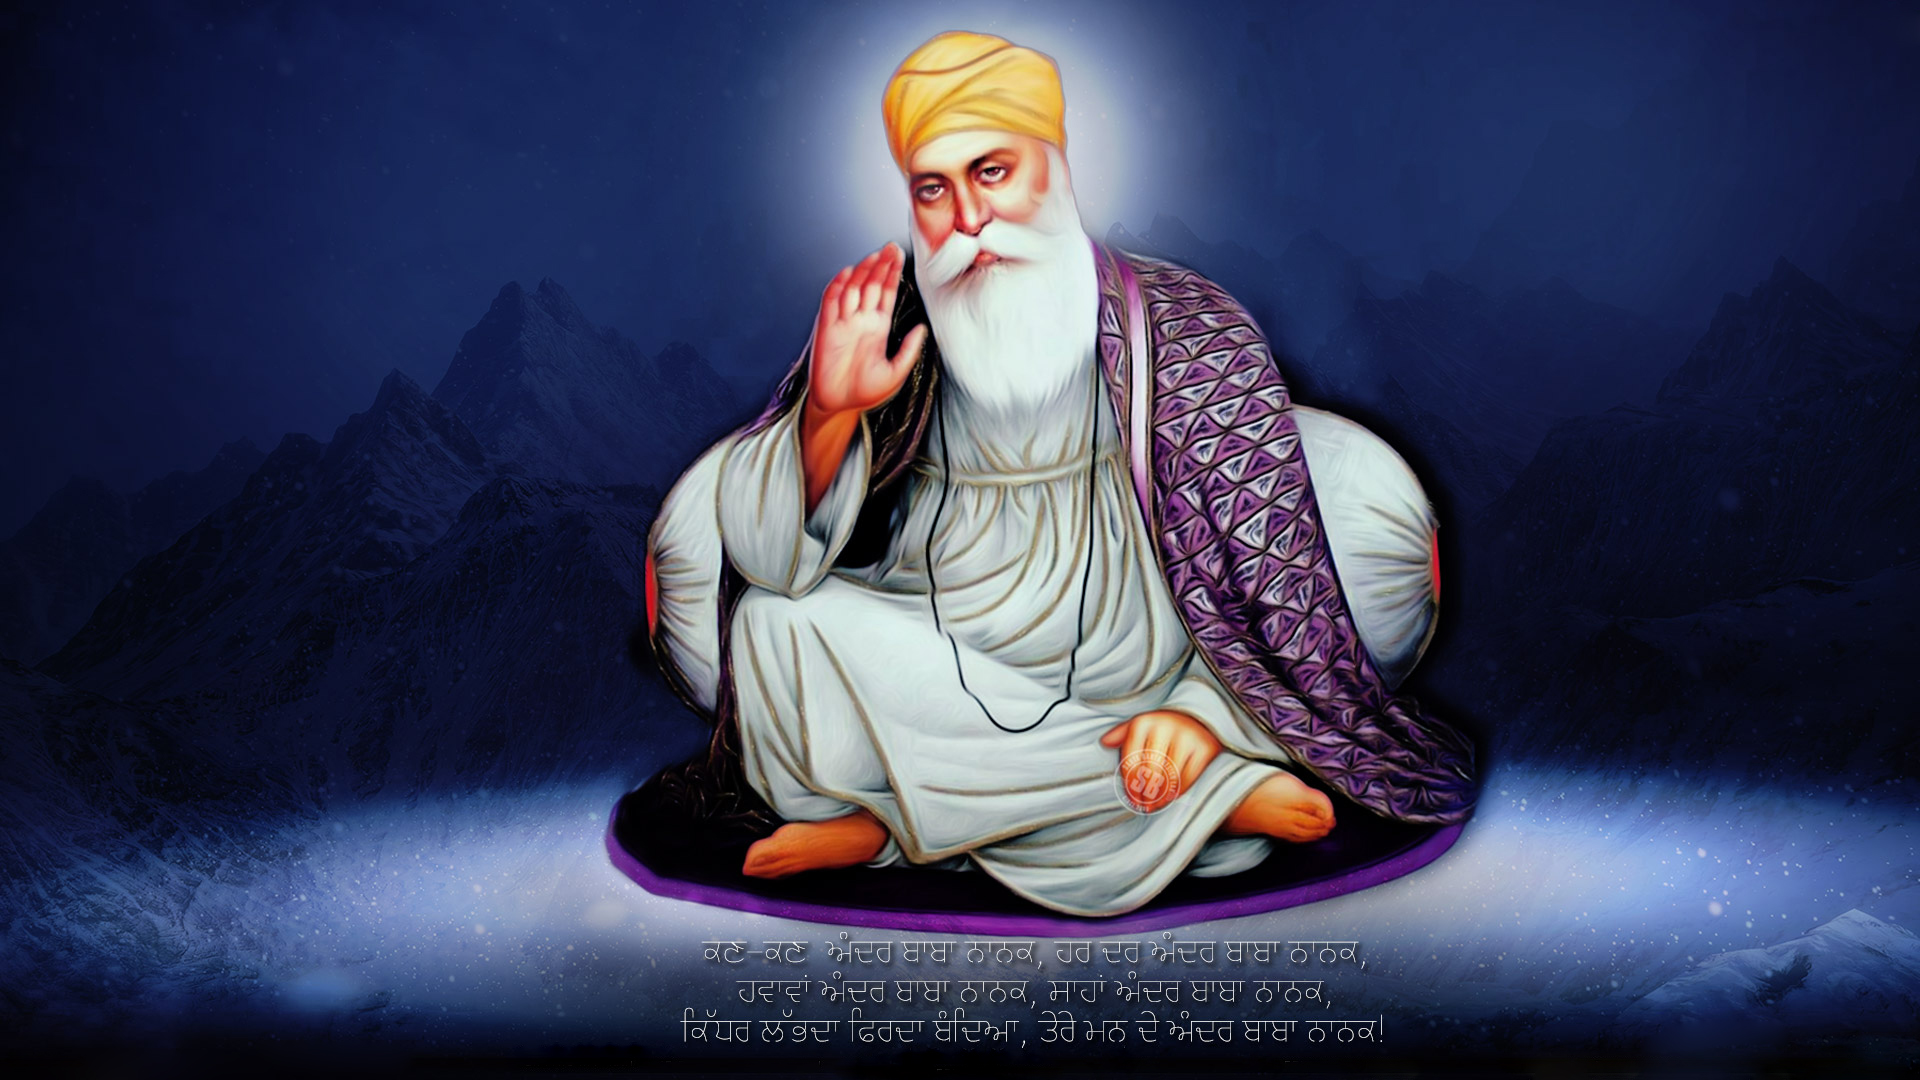 Guru Nanak Wallpaper Free Download